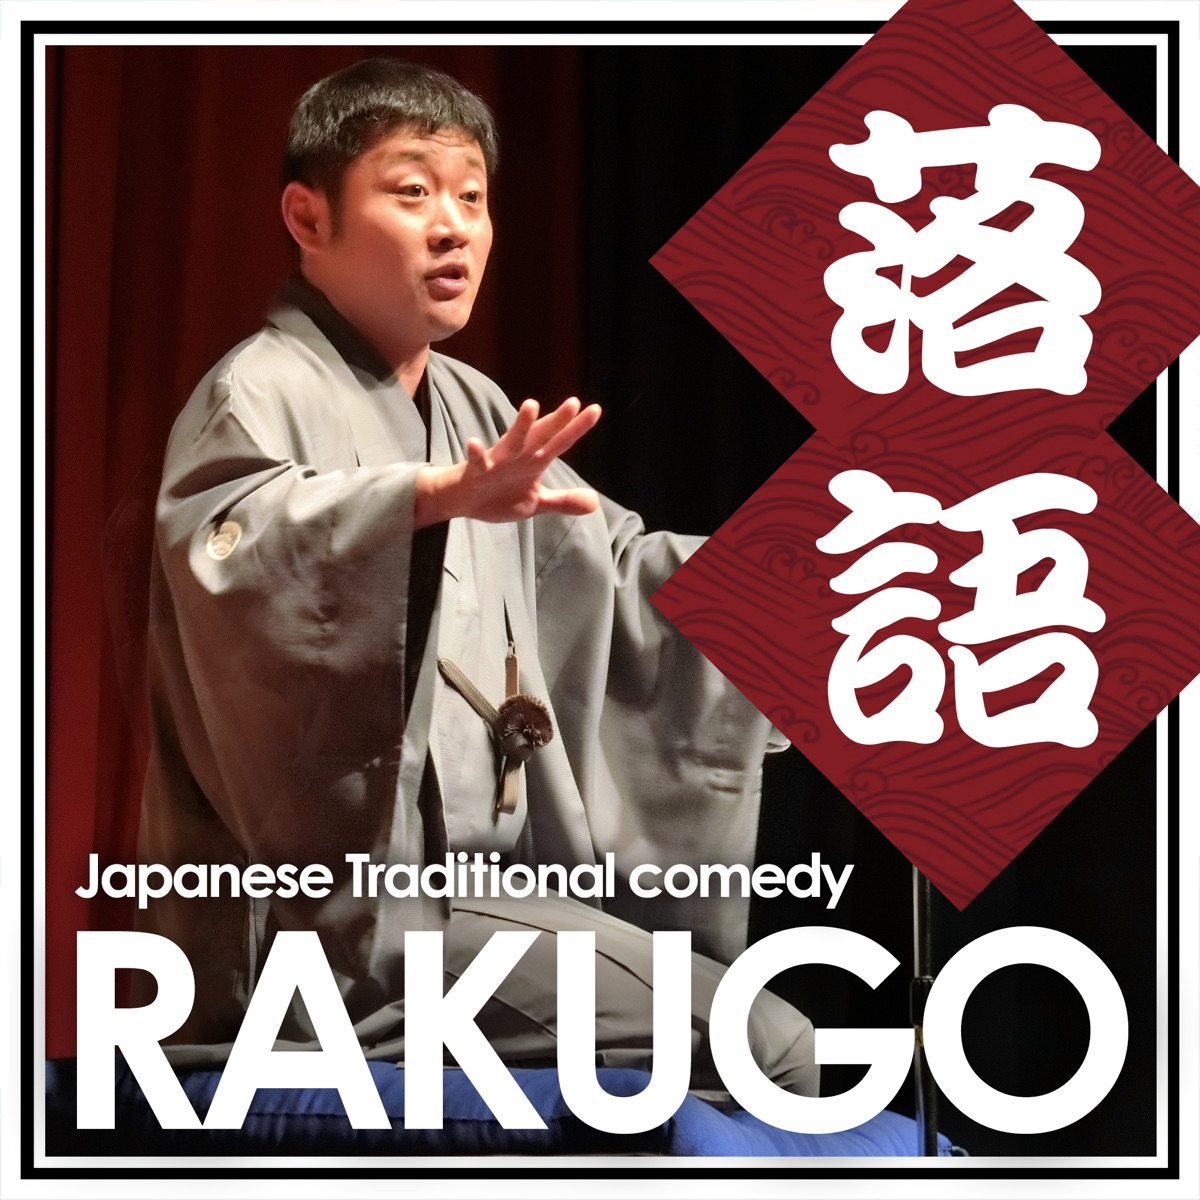 Vol.76 About April 18th's English Rakugo